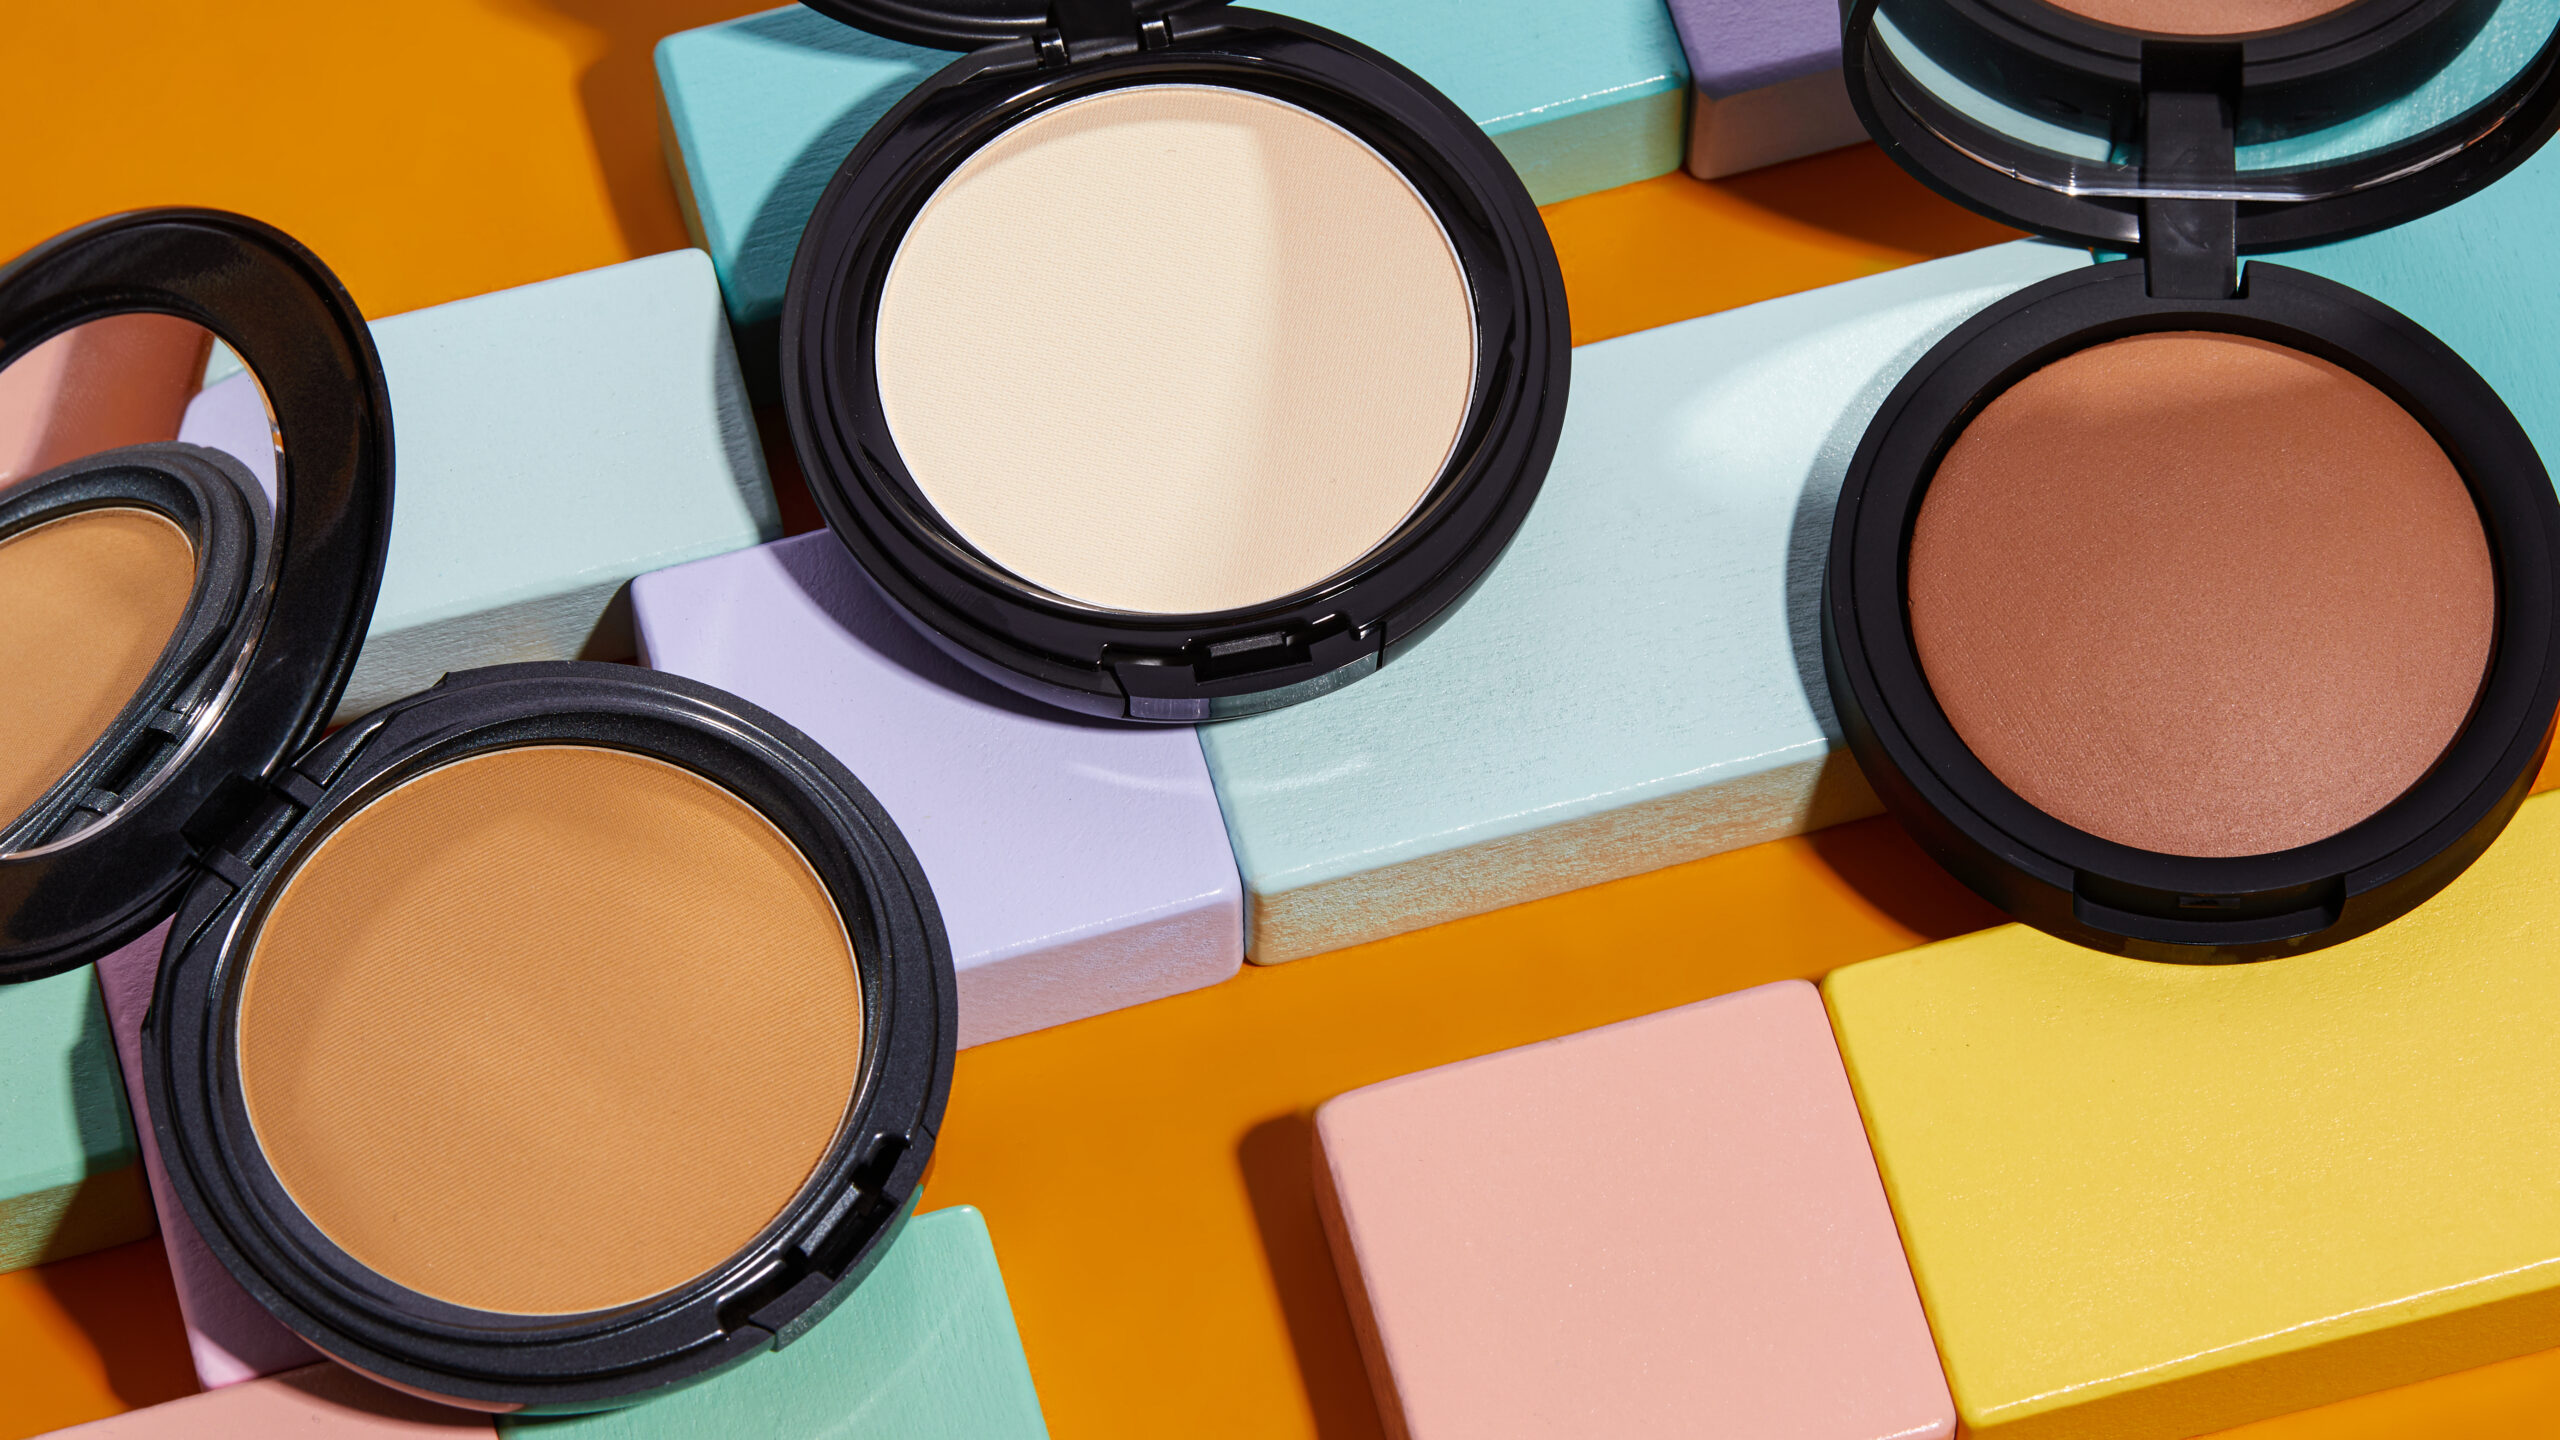 The 6 Best Powder Foundations Beauty Bay Edited